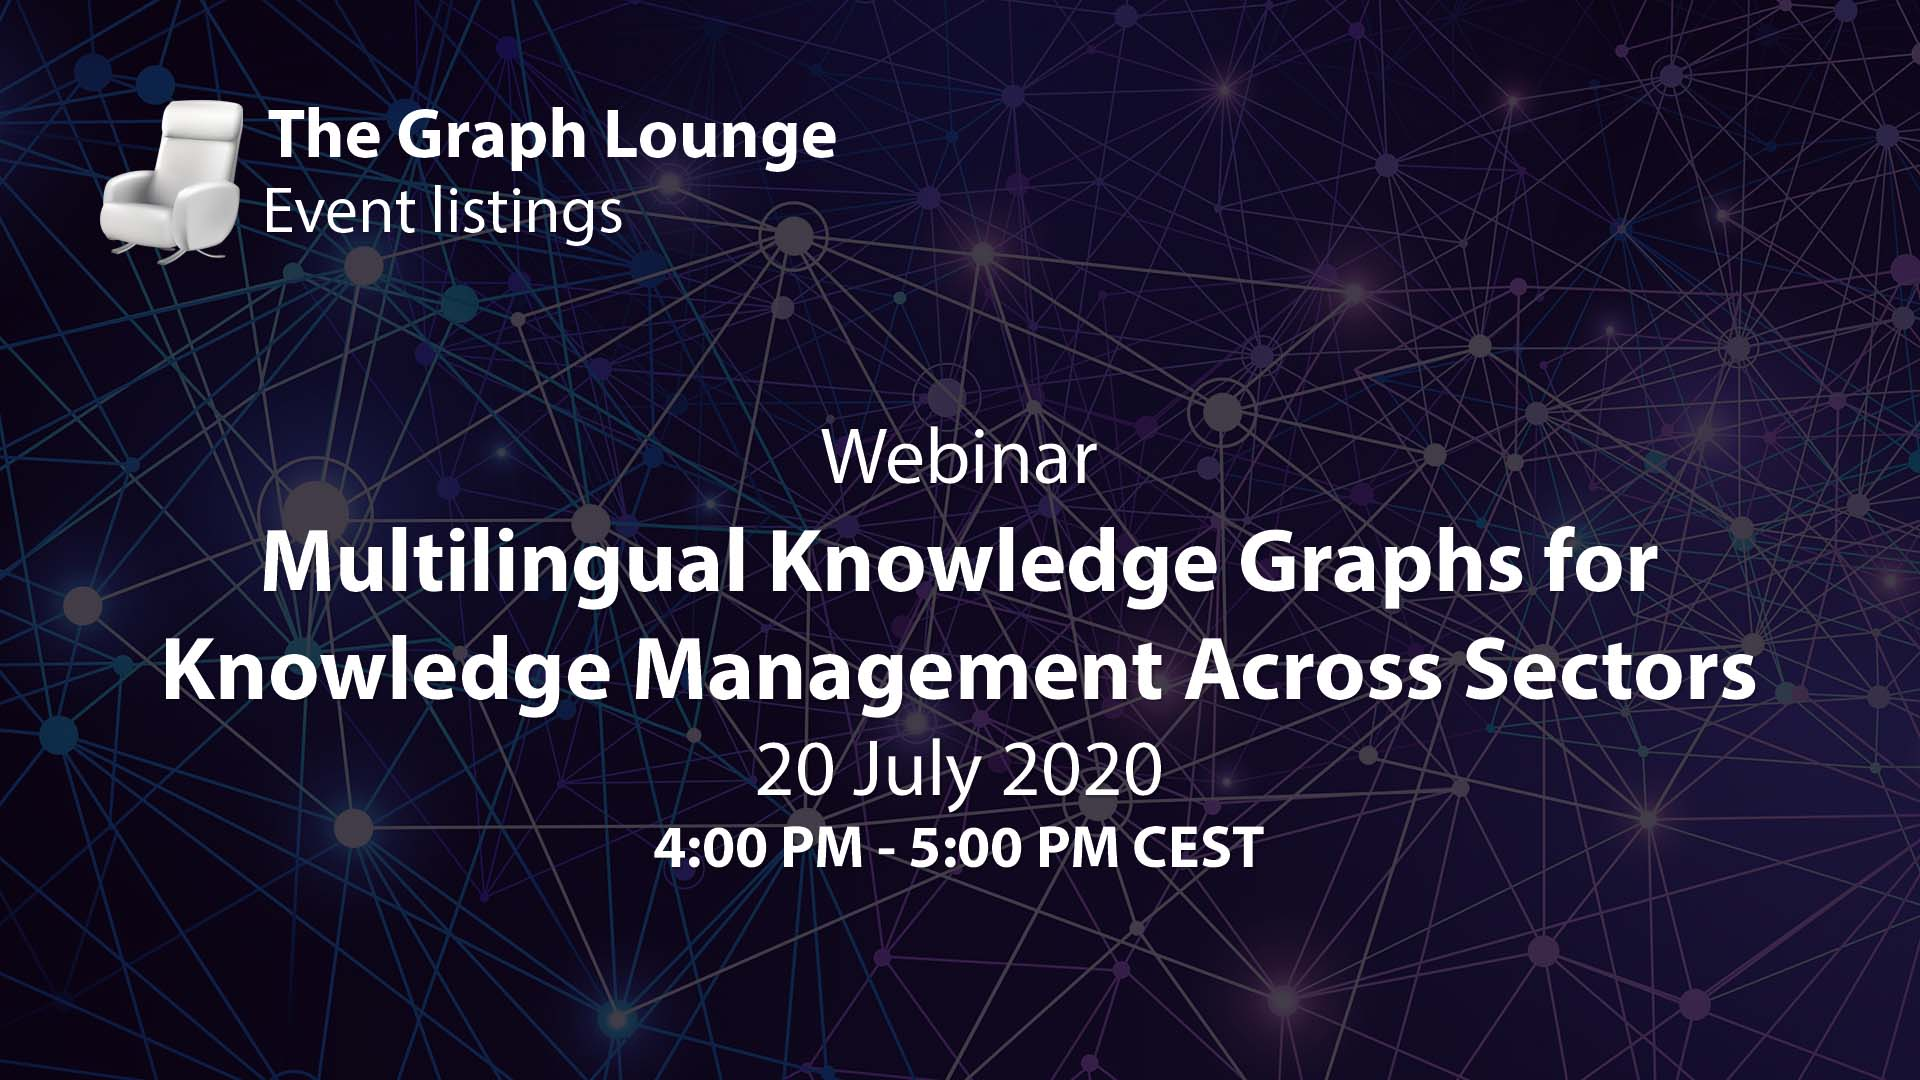 Multilingual Knowledge Graphs for Knowledge Management Across Sectors